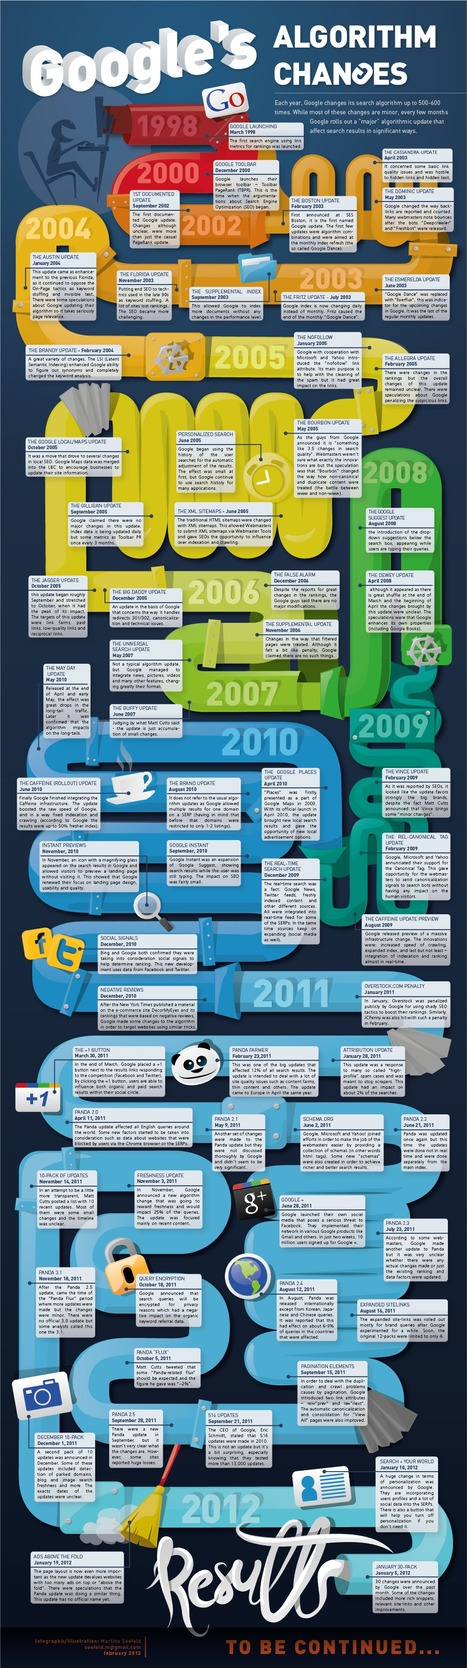 Google Algorithm Changes 1998-2012 [Infographic] | Outrider | Aware Entertainment | Scoop.it